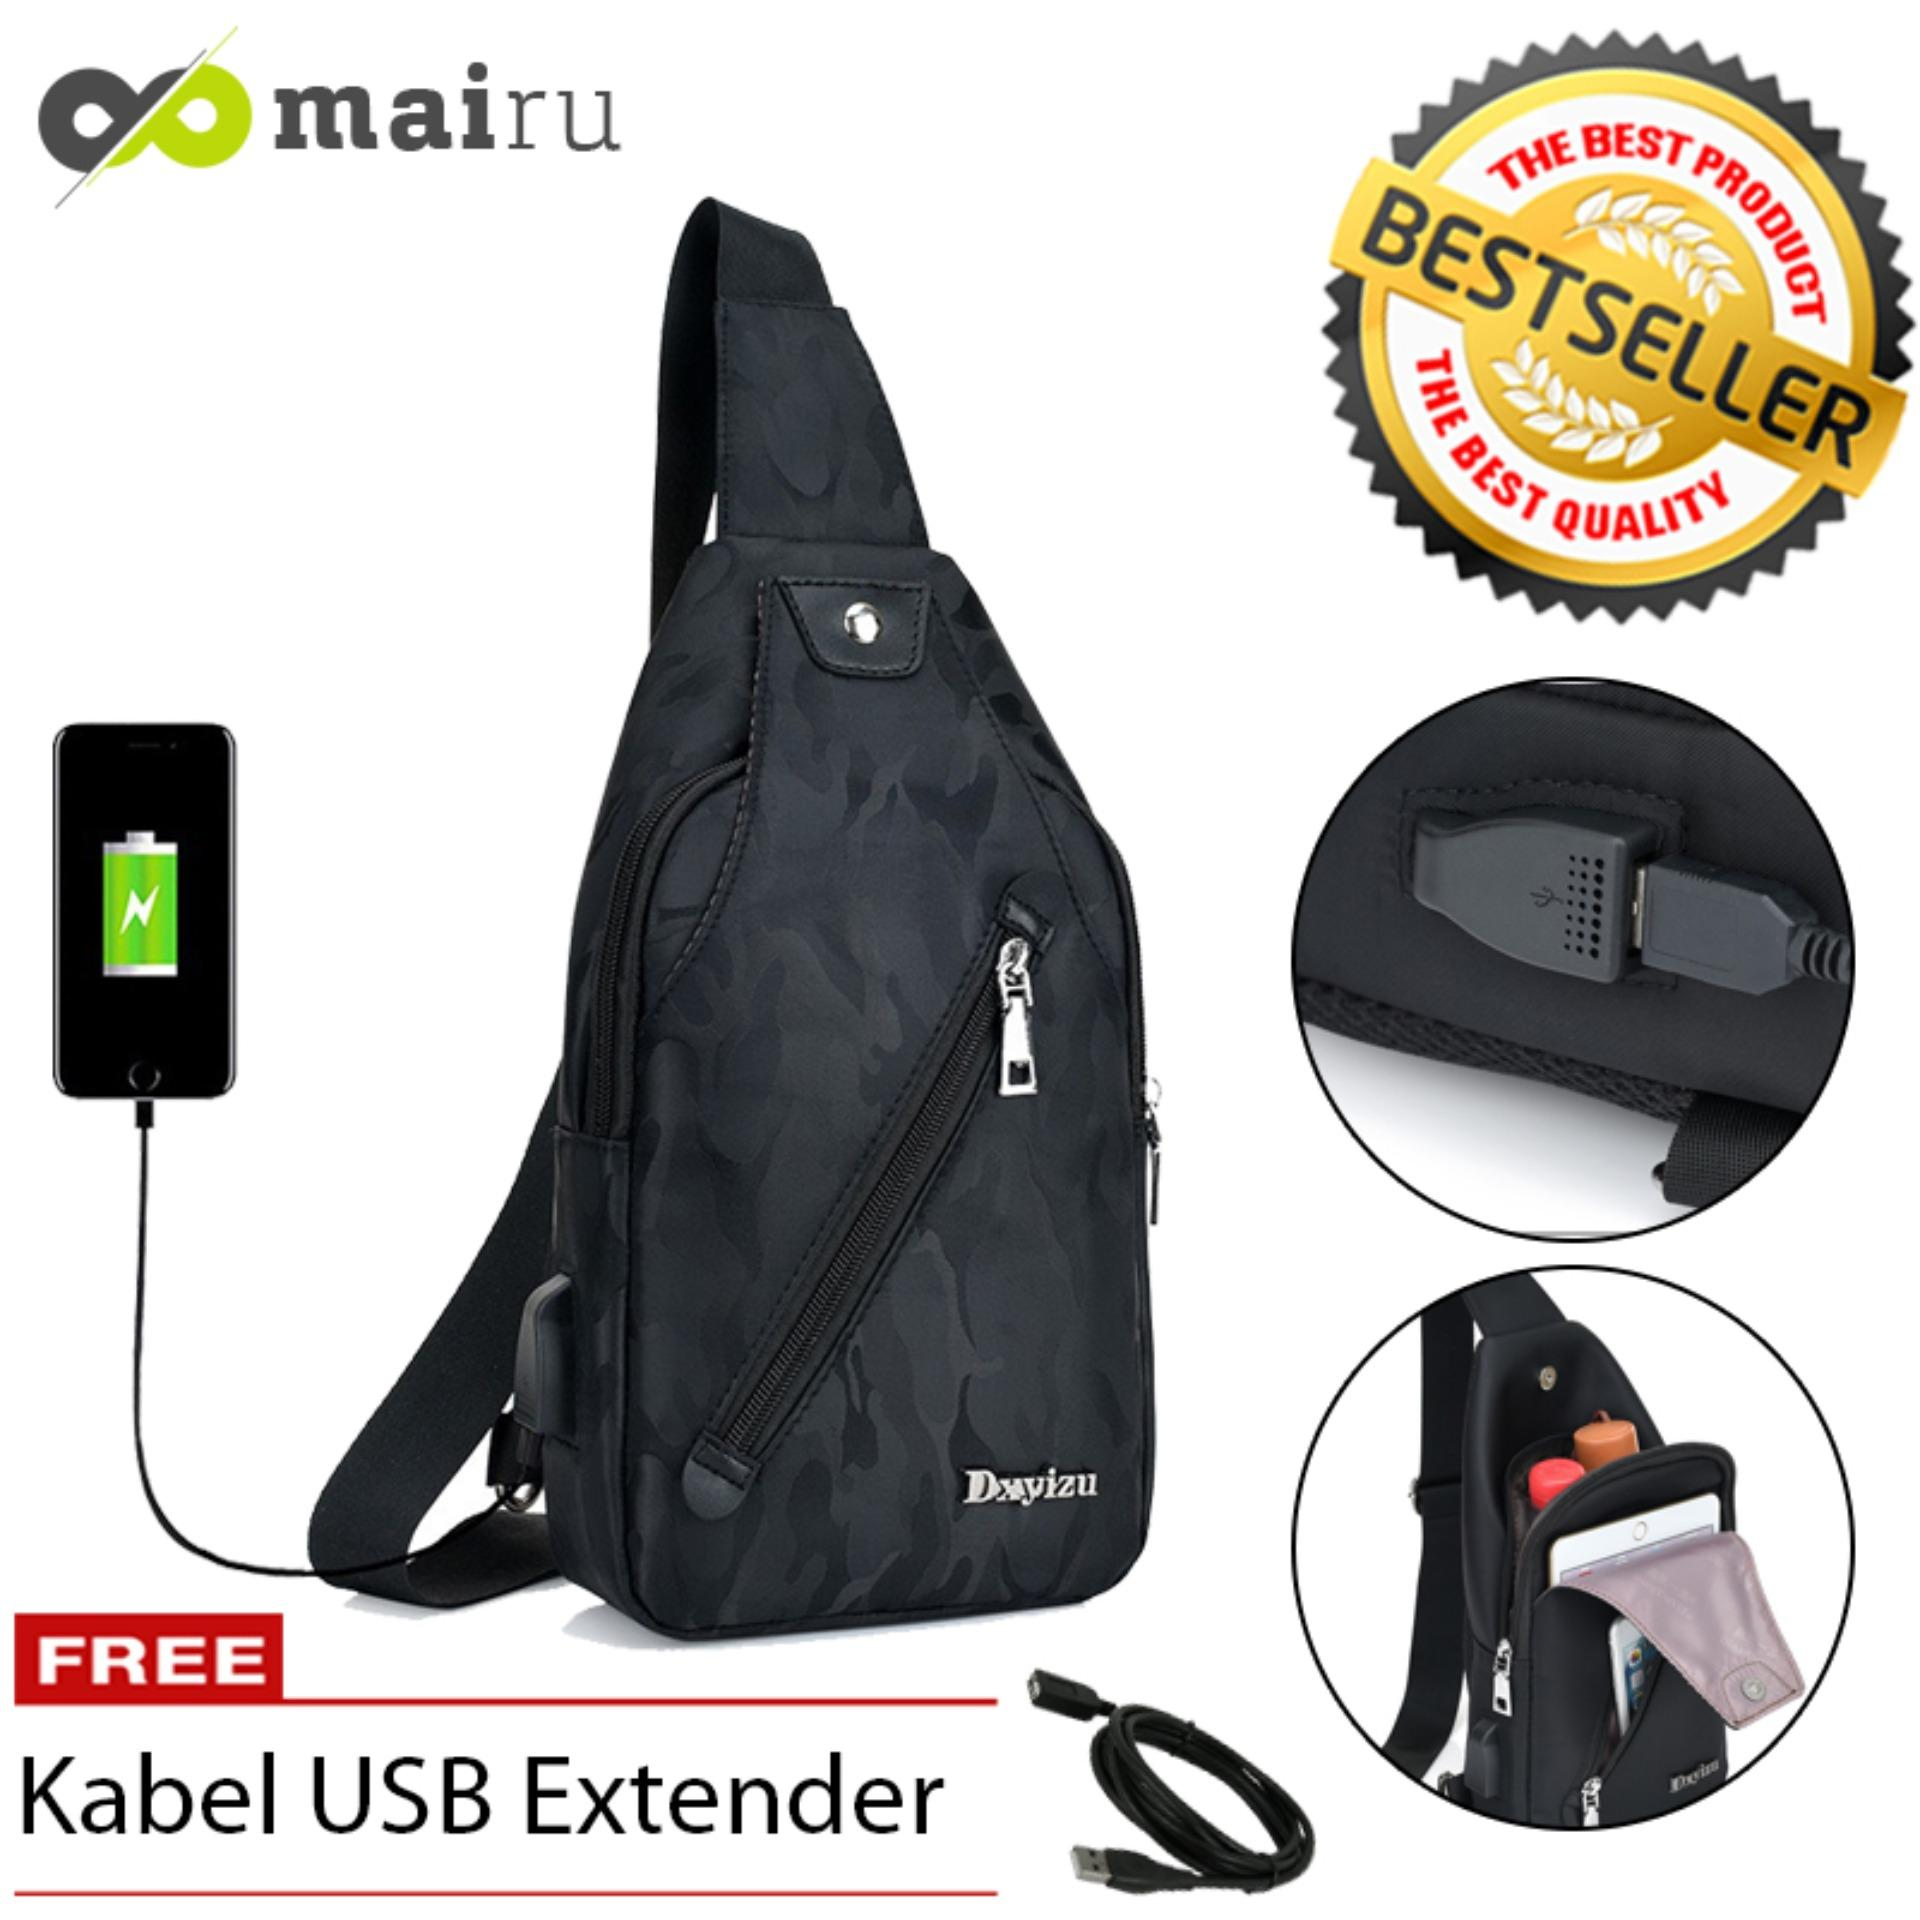 Harga Mairu Dxyizu 533 Tas Selempang Pria Sling Bag Cross Body With Usb Charger Support For Iphone Ipad Mini Xiaomi Samsung Tab Tablet 8 Anti Theft Origin